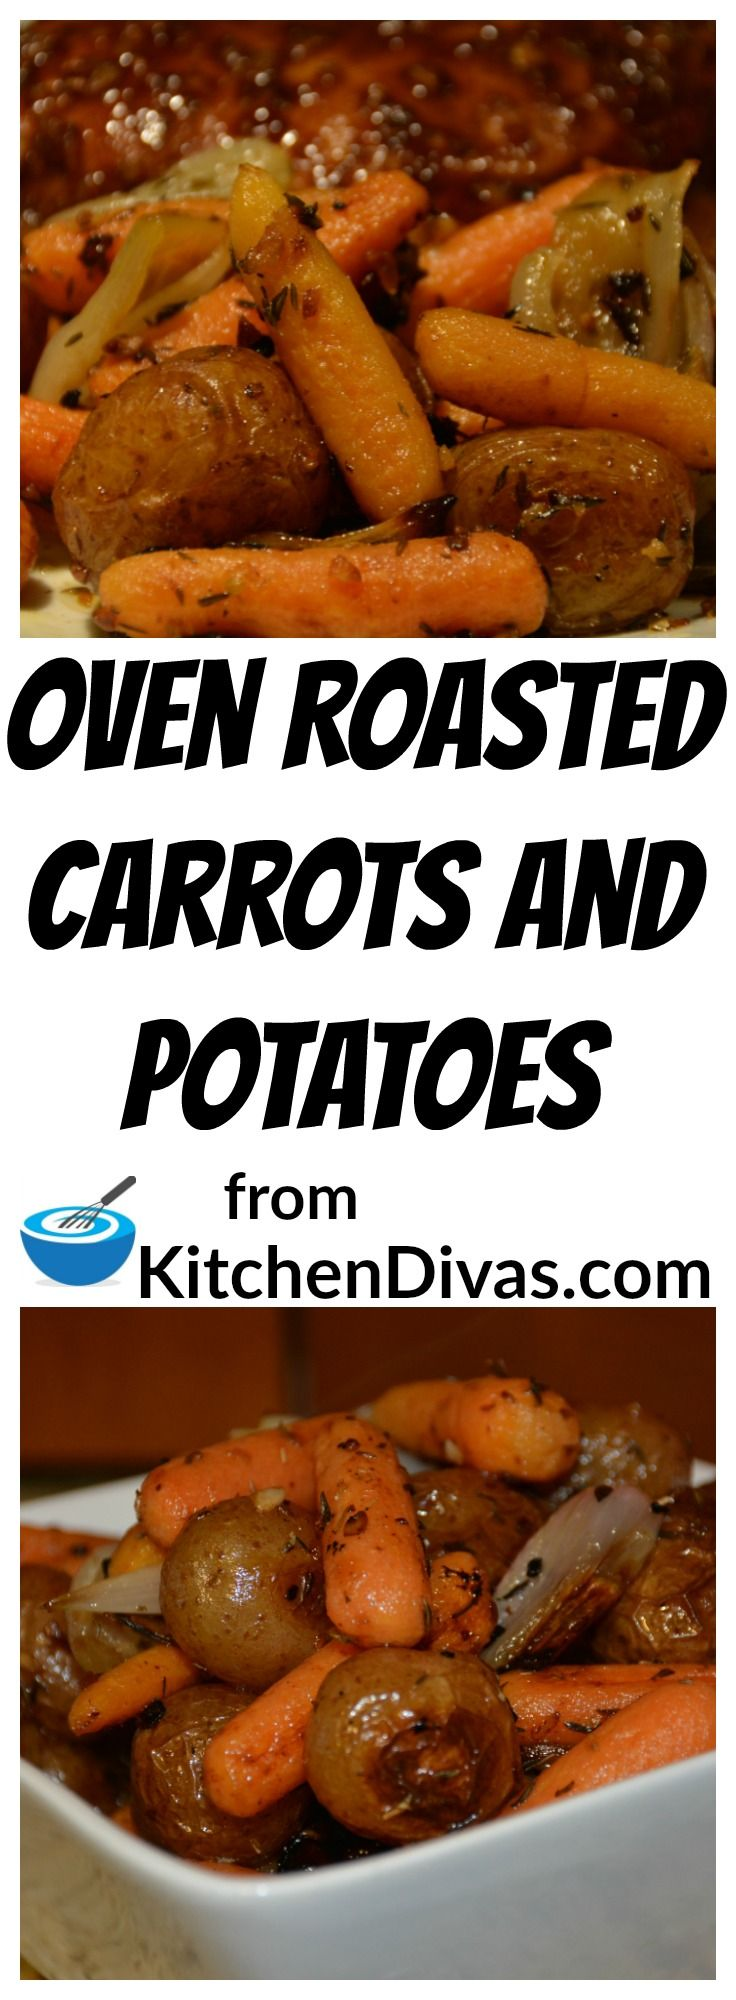 This recipe for Oven Roasted Carrots and Potatoes is so easy and absolutely delicious! This a perfect vegetable side to include in any meal. You have to give this a try.